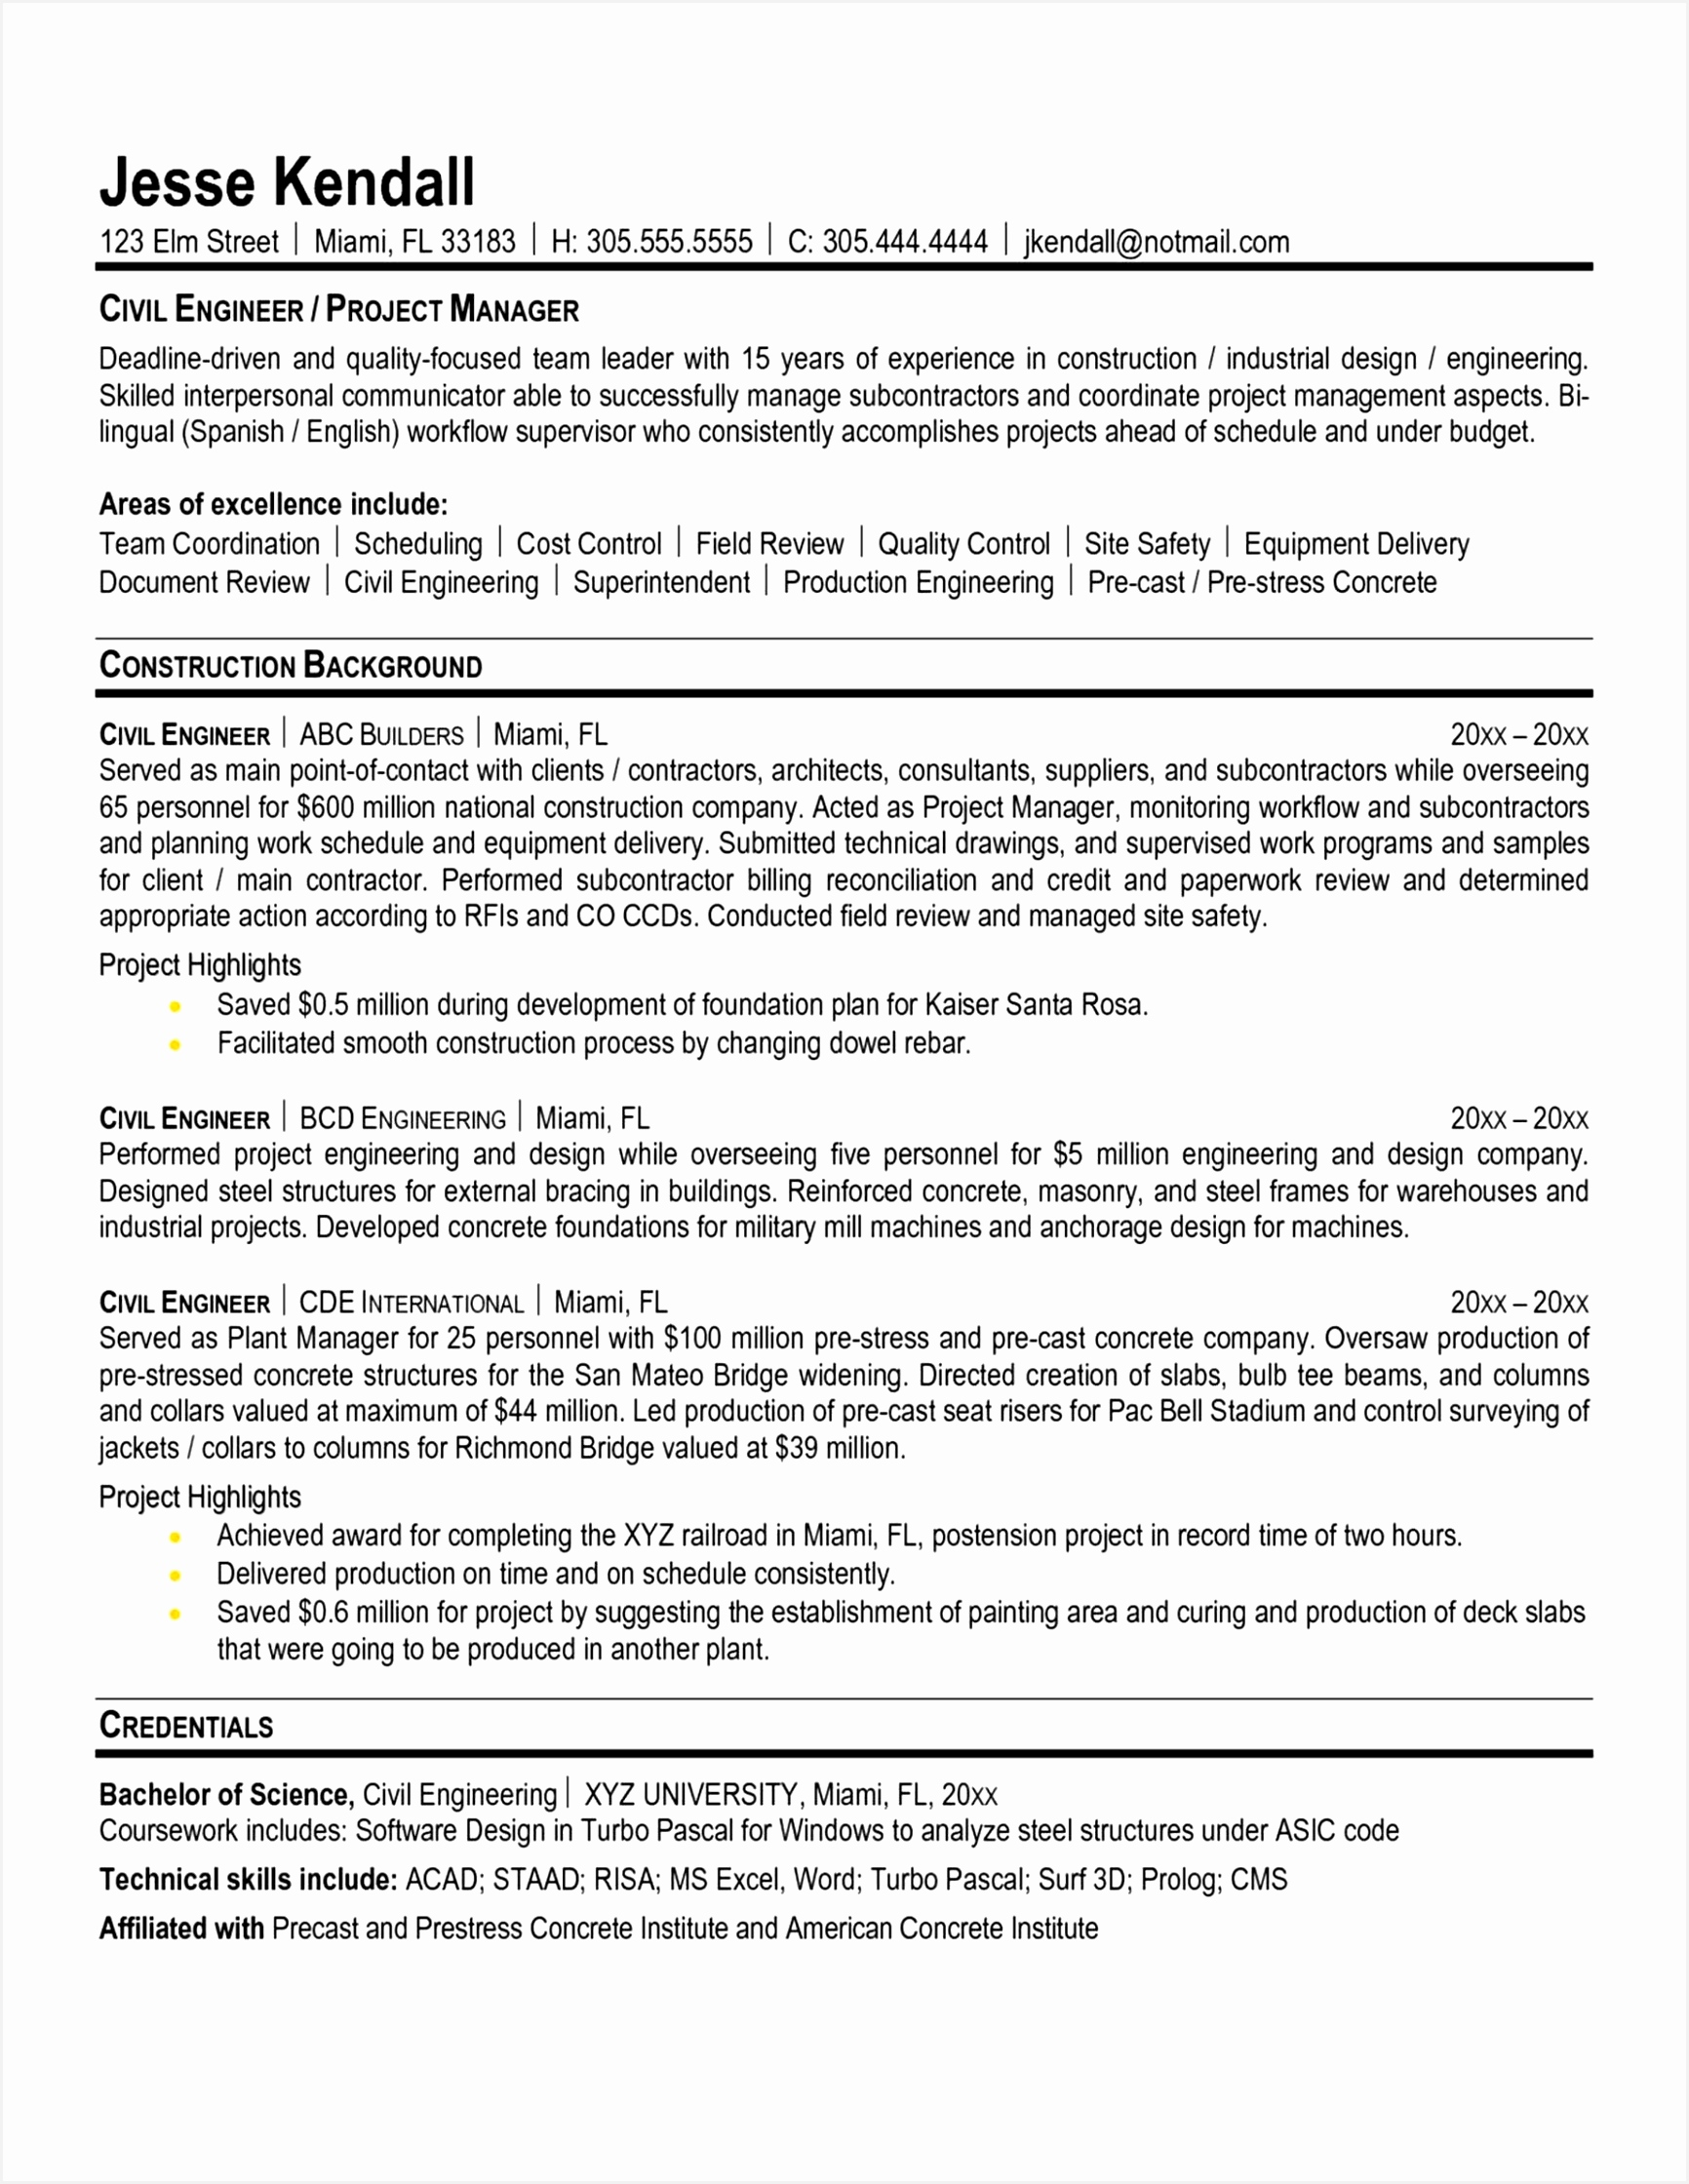 Contract Stress Engineer Sample Resume Nysfz Unique Quality assurance Director Resume — Resumes Project Of Contract Stress Engineer Sample Resume atgkl Awesome 24 Fresh Mechanical Engineering Resume Templates